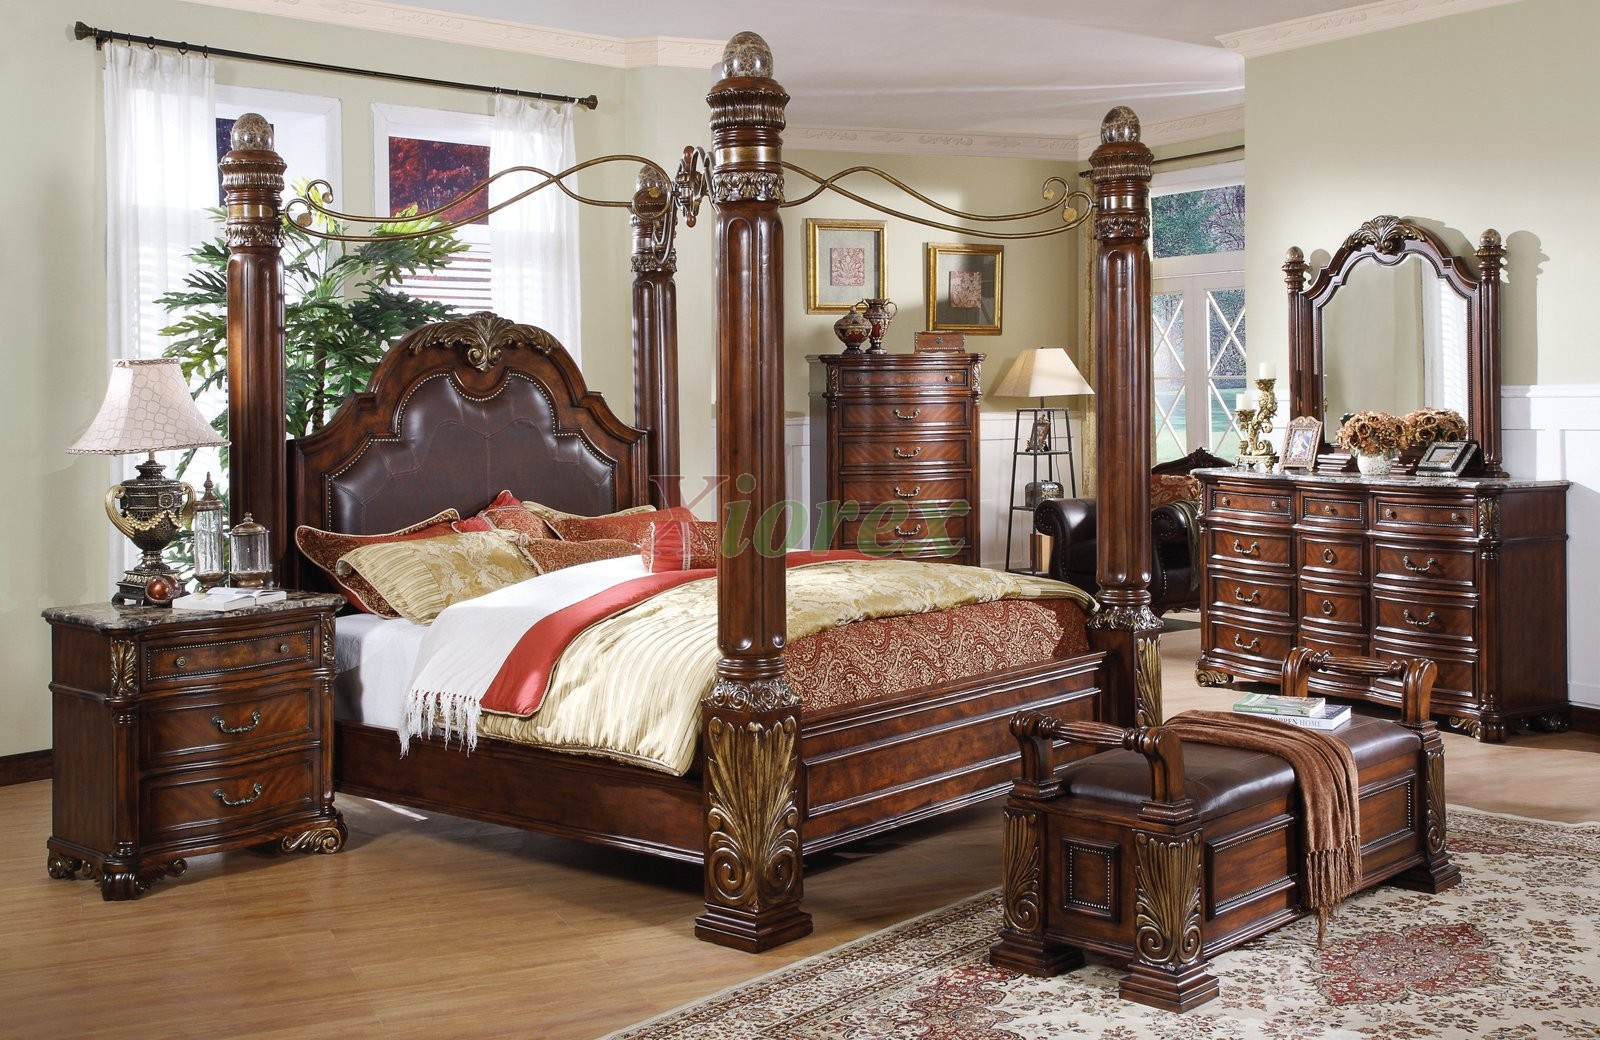 Canopy bed sets bedroom furniture sets w poster canopy for Metal bedroom furniture